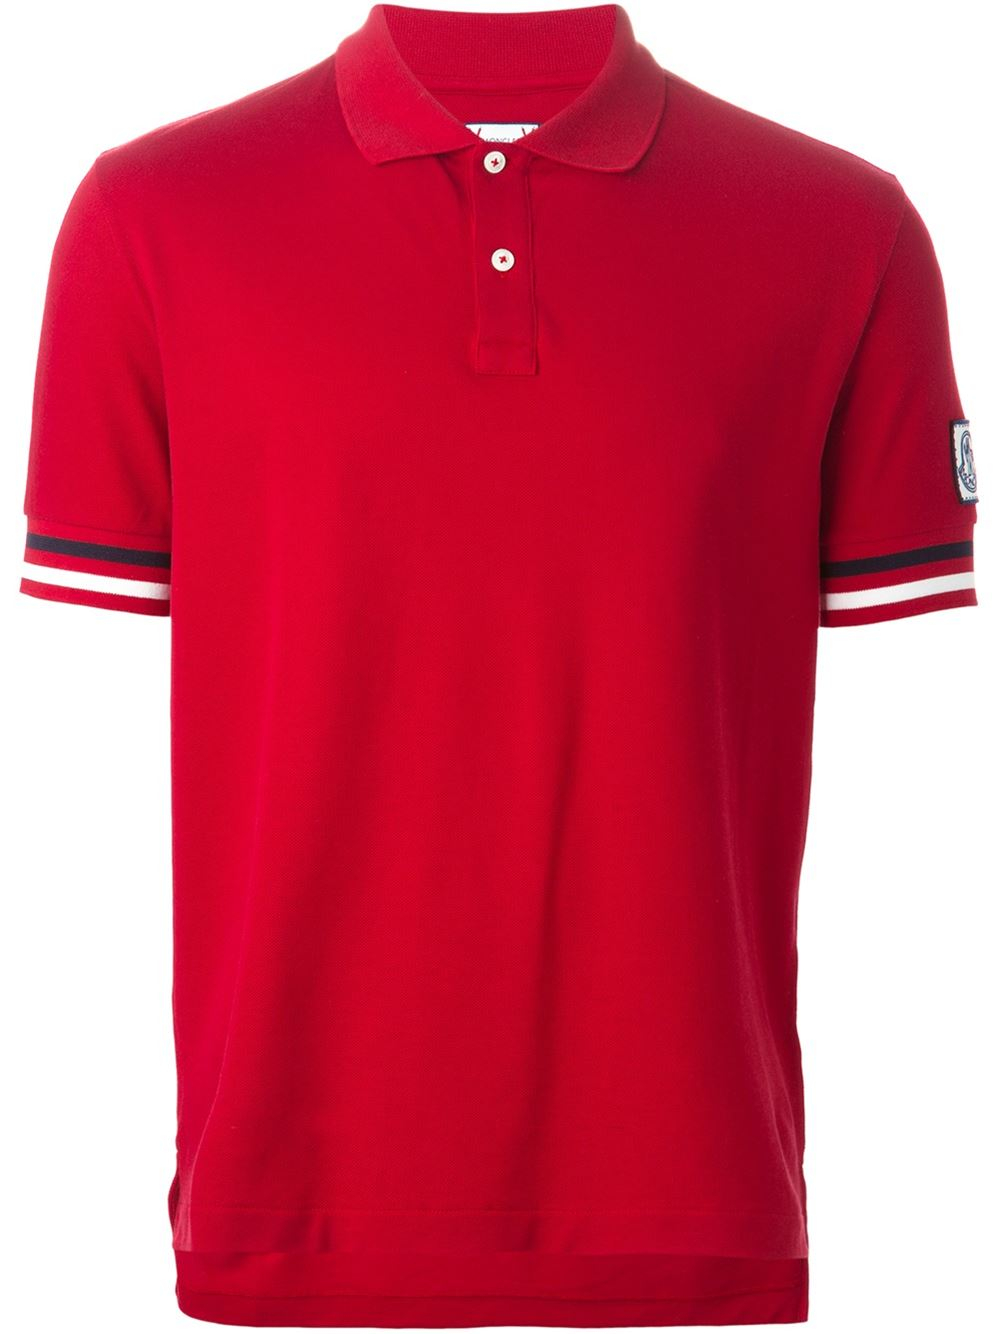 Moncler Gamme Bleu Classic Polo Shirt In Red For Men Lyst